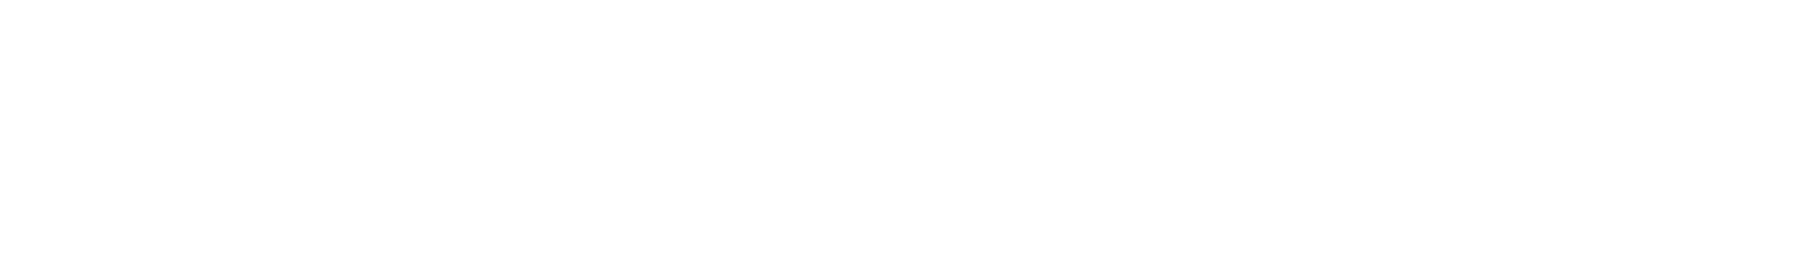 veh1 cutted sounds   076